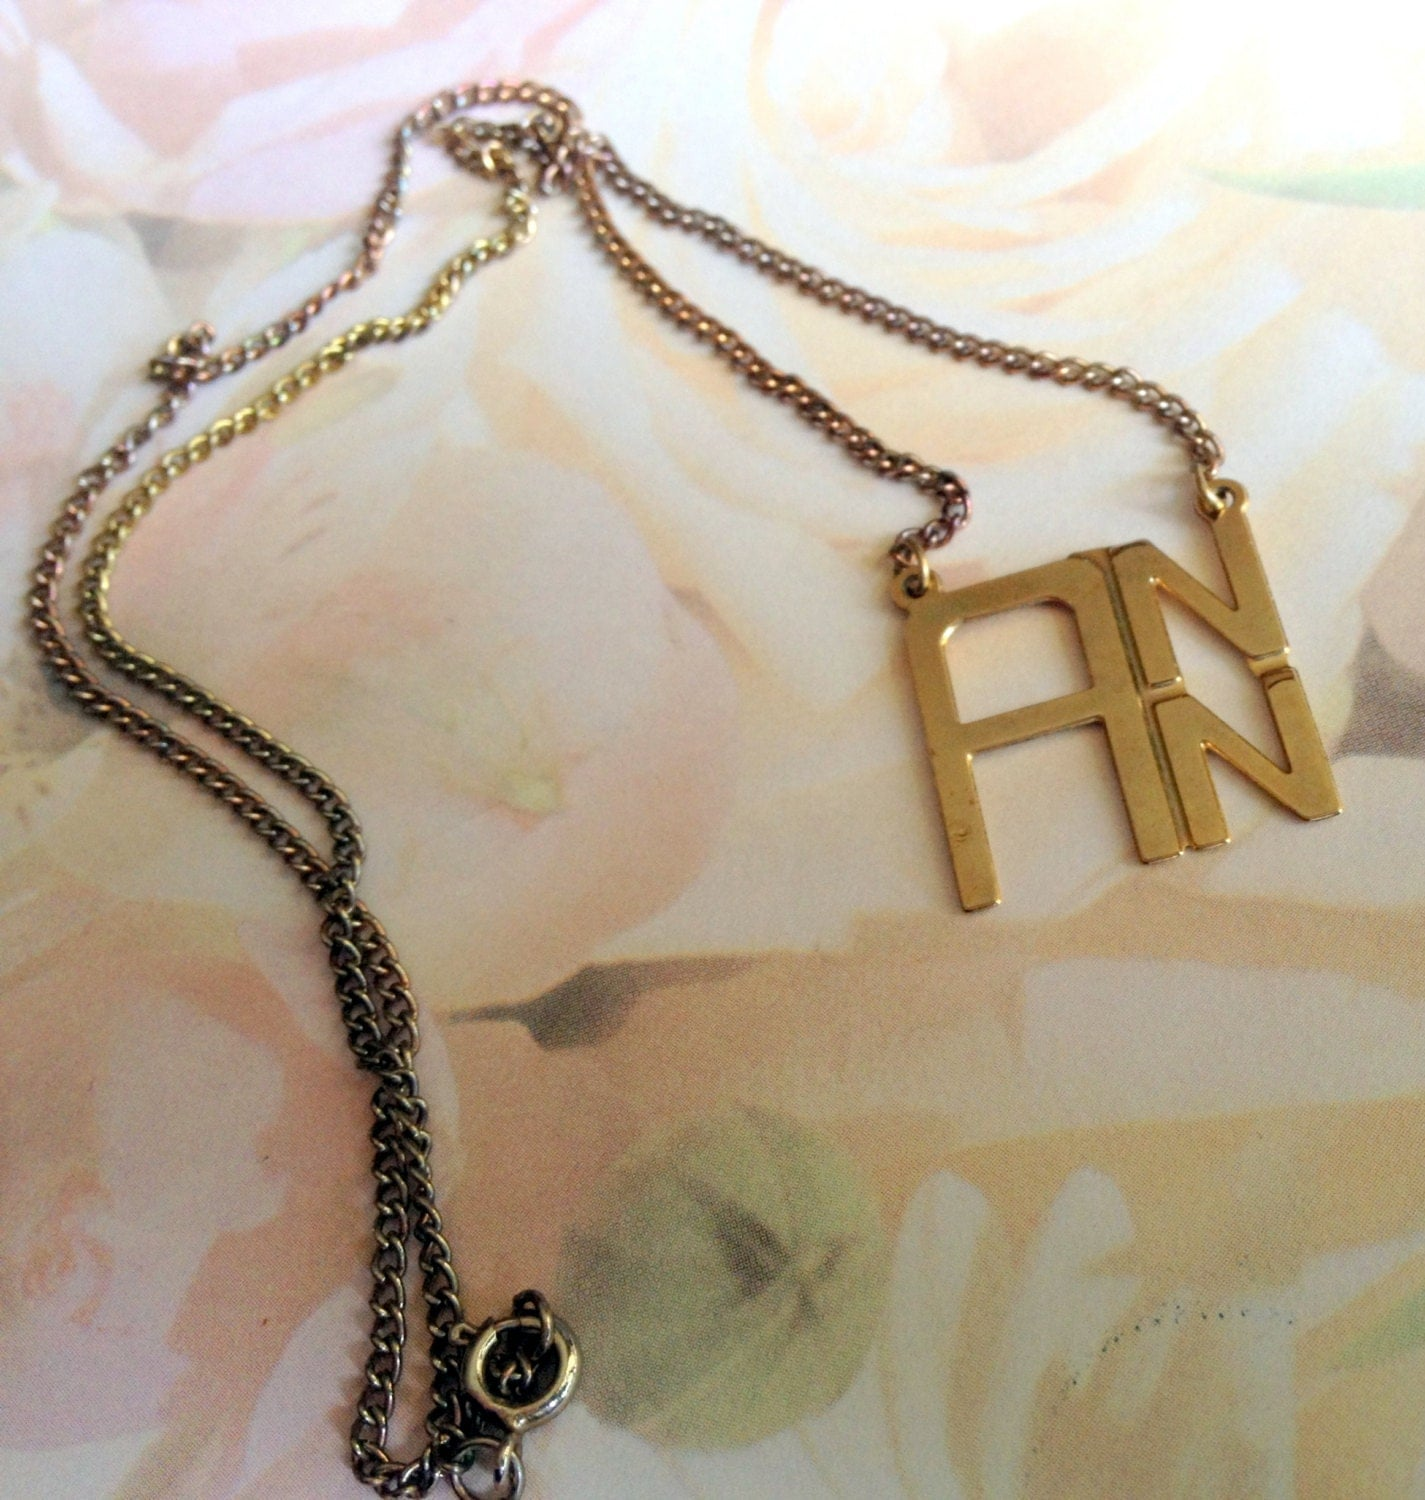 Choker Necklace Etsy: Name Necklace Ann Signature Etsy Jewelry Vintage Jewelry